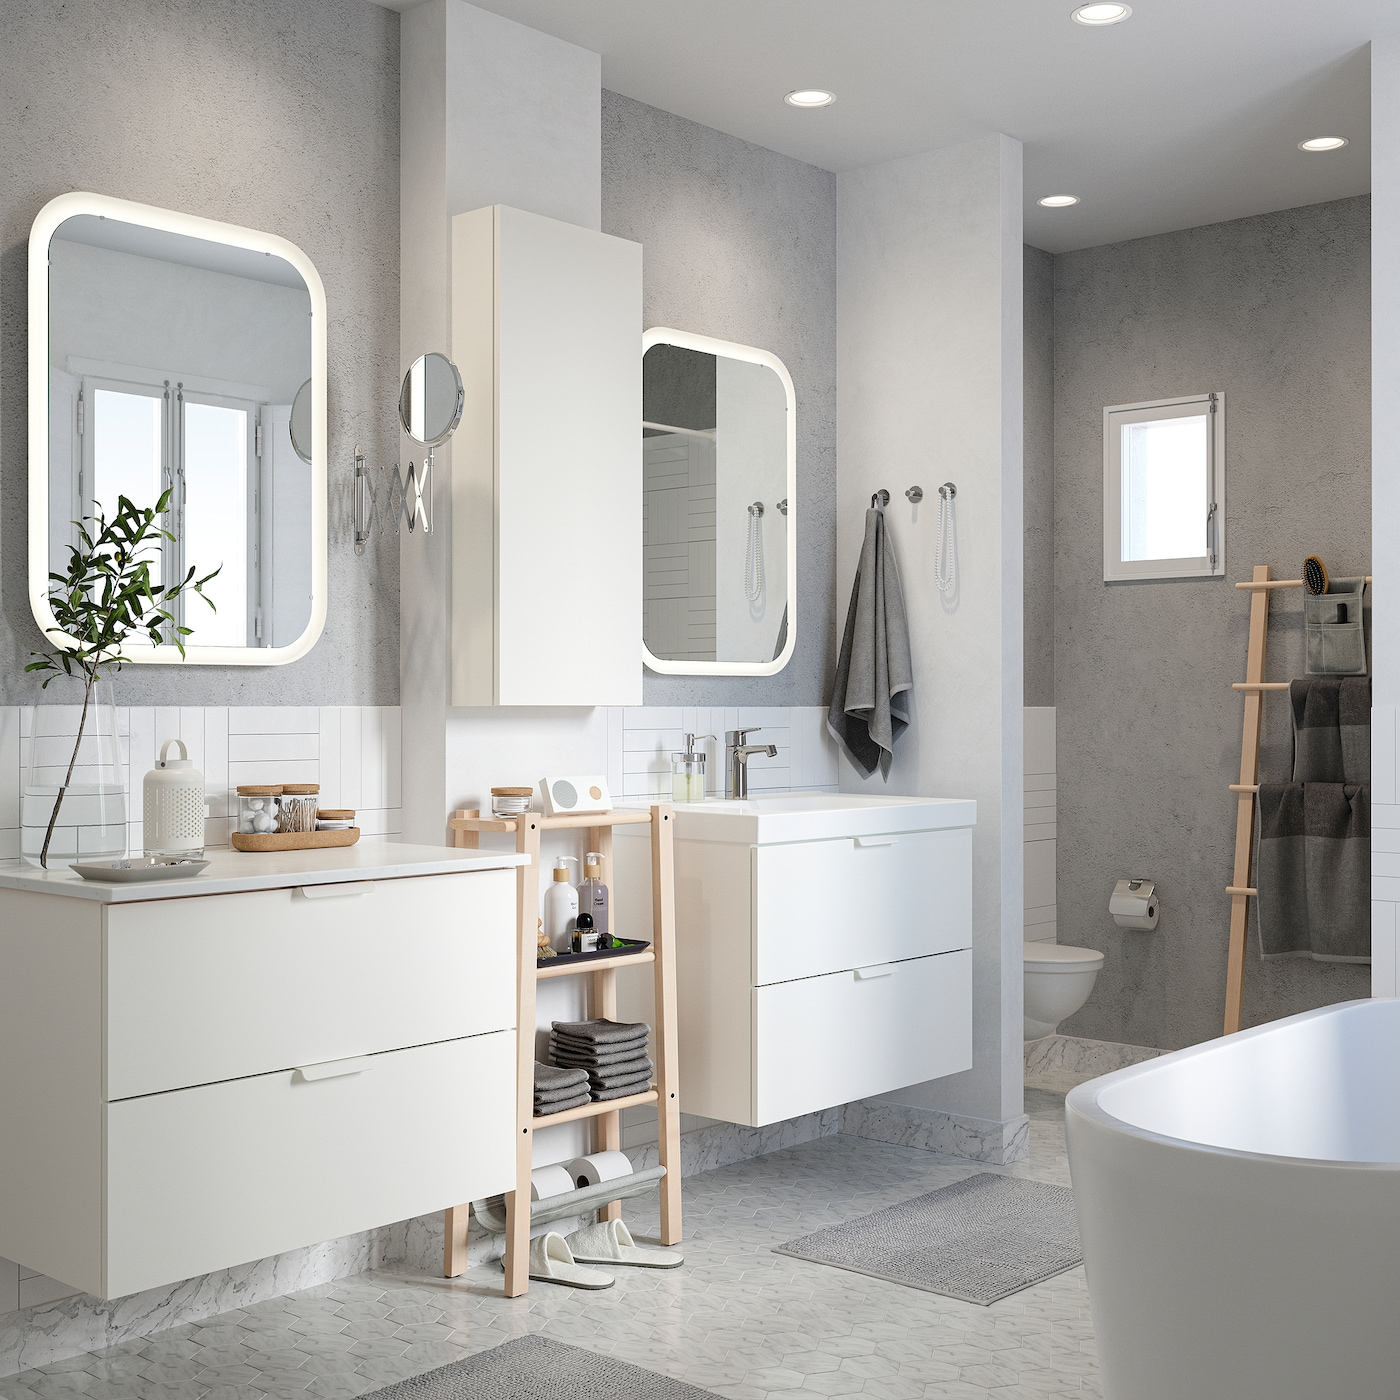 A crisp white bathroom with two wash stands, two mirrors with integrated lighting and bath mats and towels in grey.